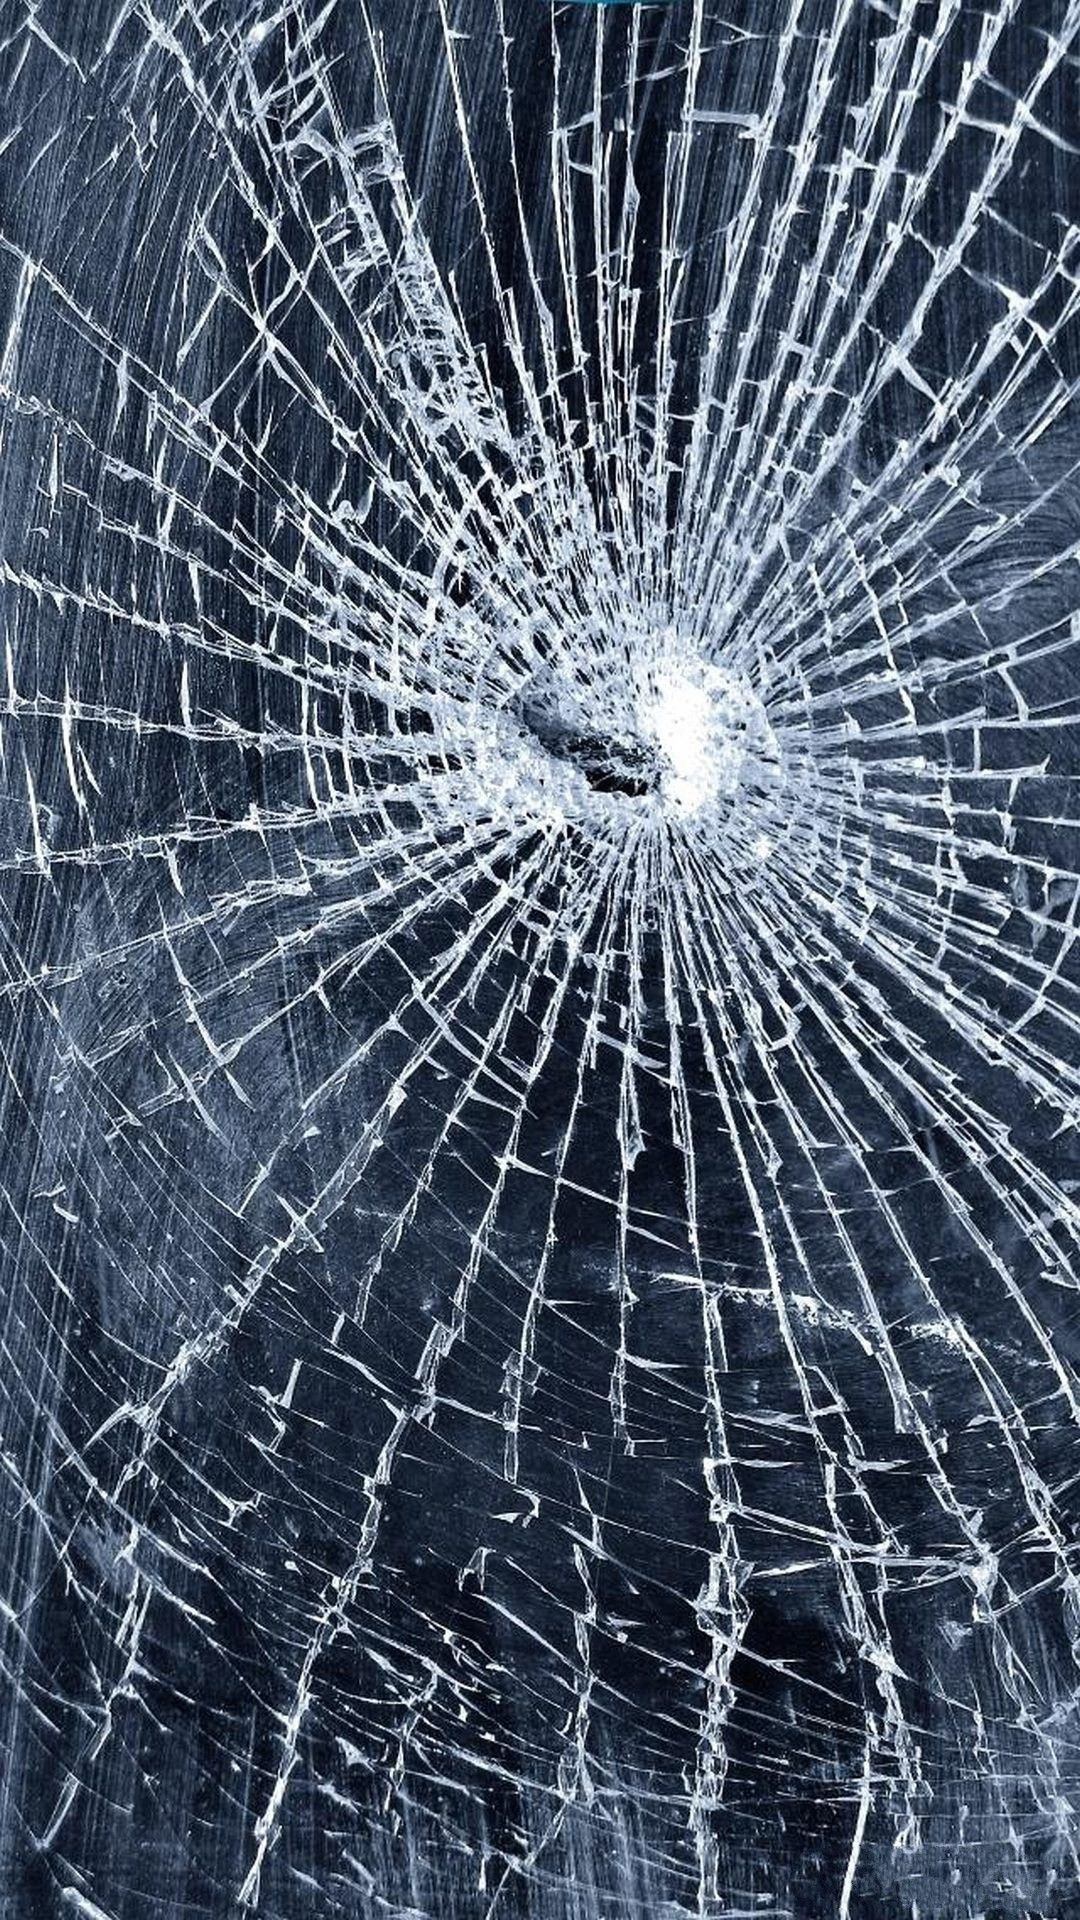 10 Top Cracked Screen Wallpaper Android FULL HD 1080p For PC Background   Wallpaper for PC ...